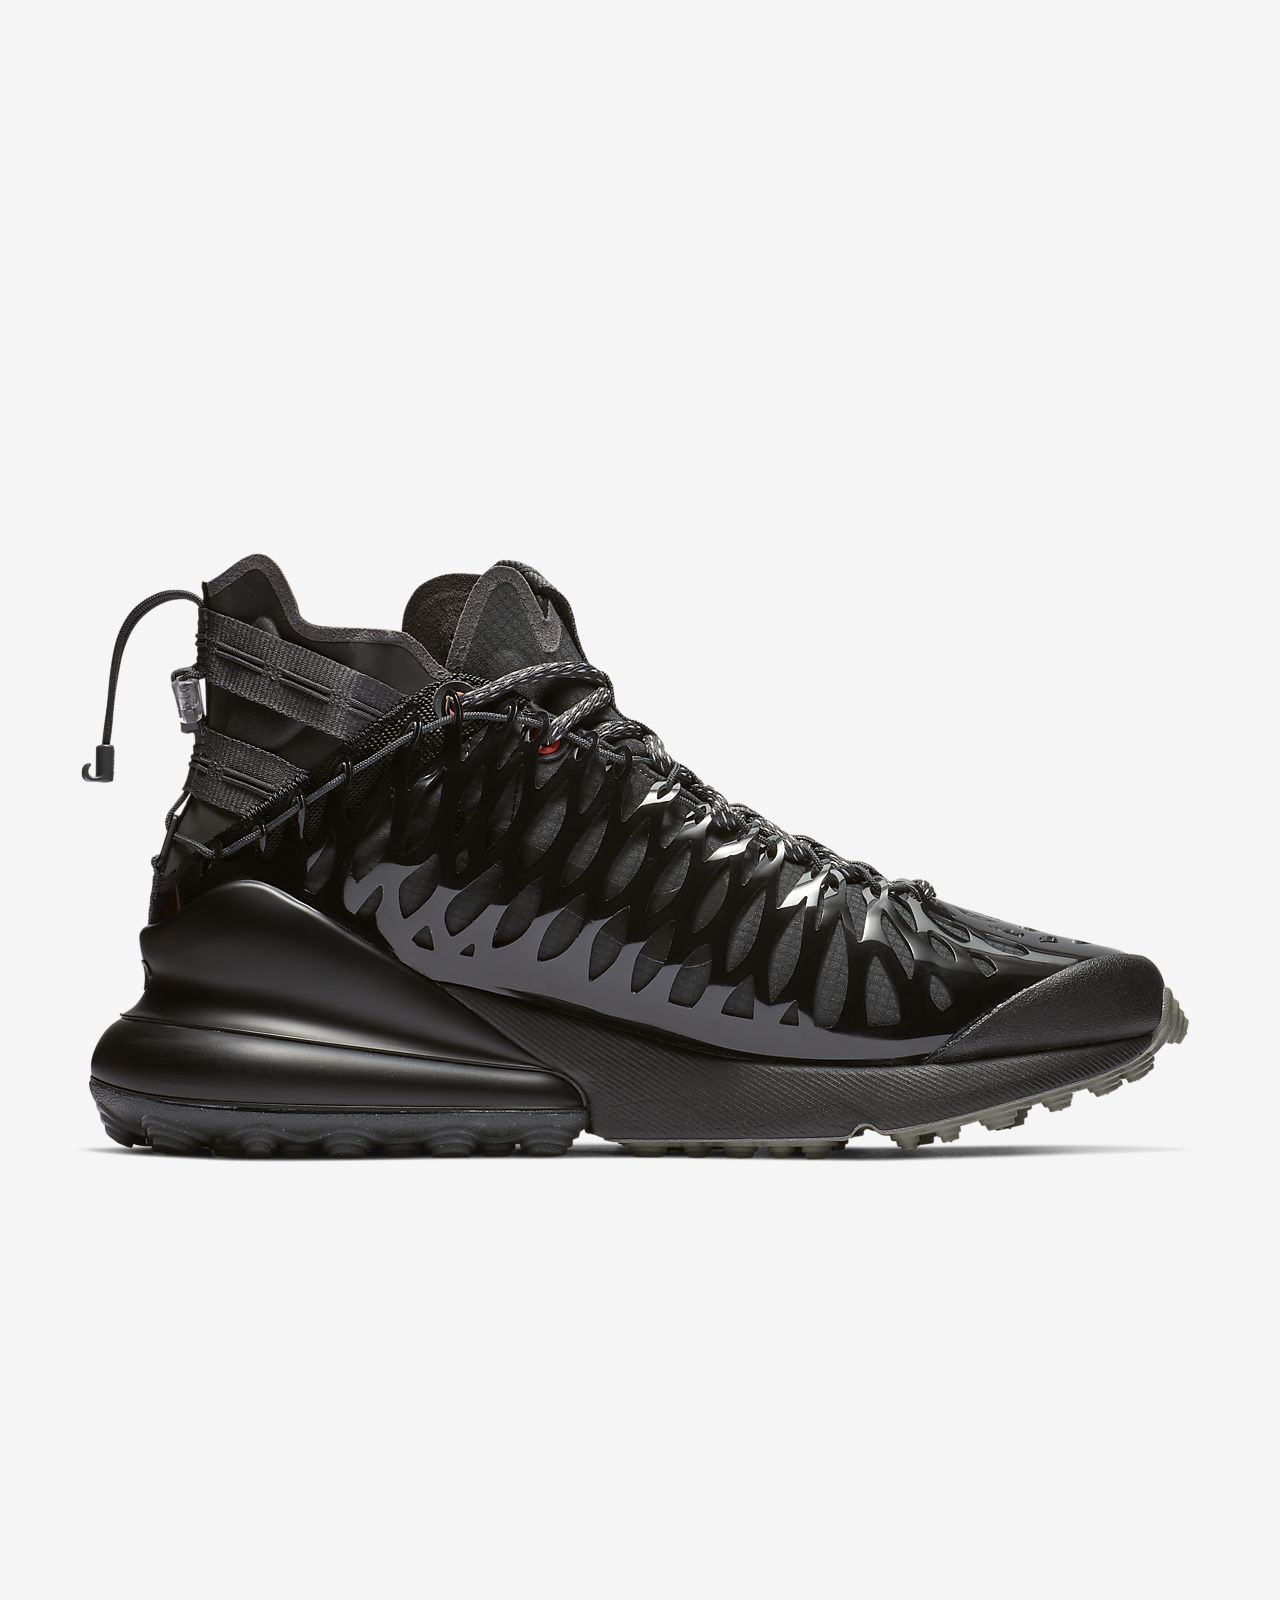 half off f81ea 3743d ... Chaussure Nike Air Max 270 ISPA pour Homme